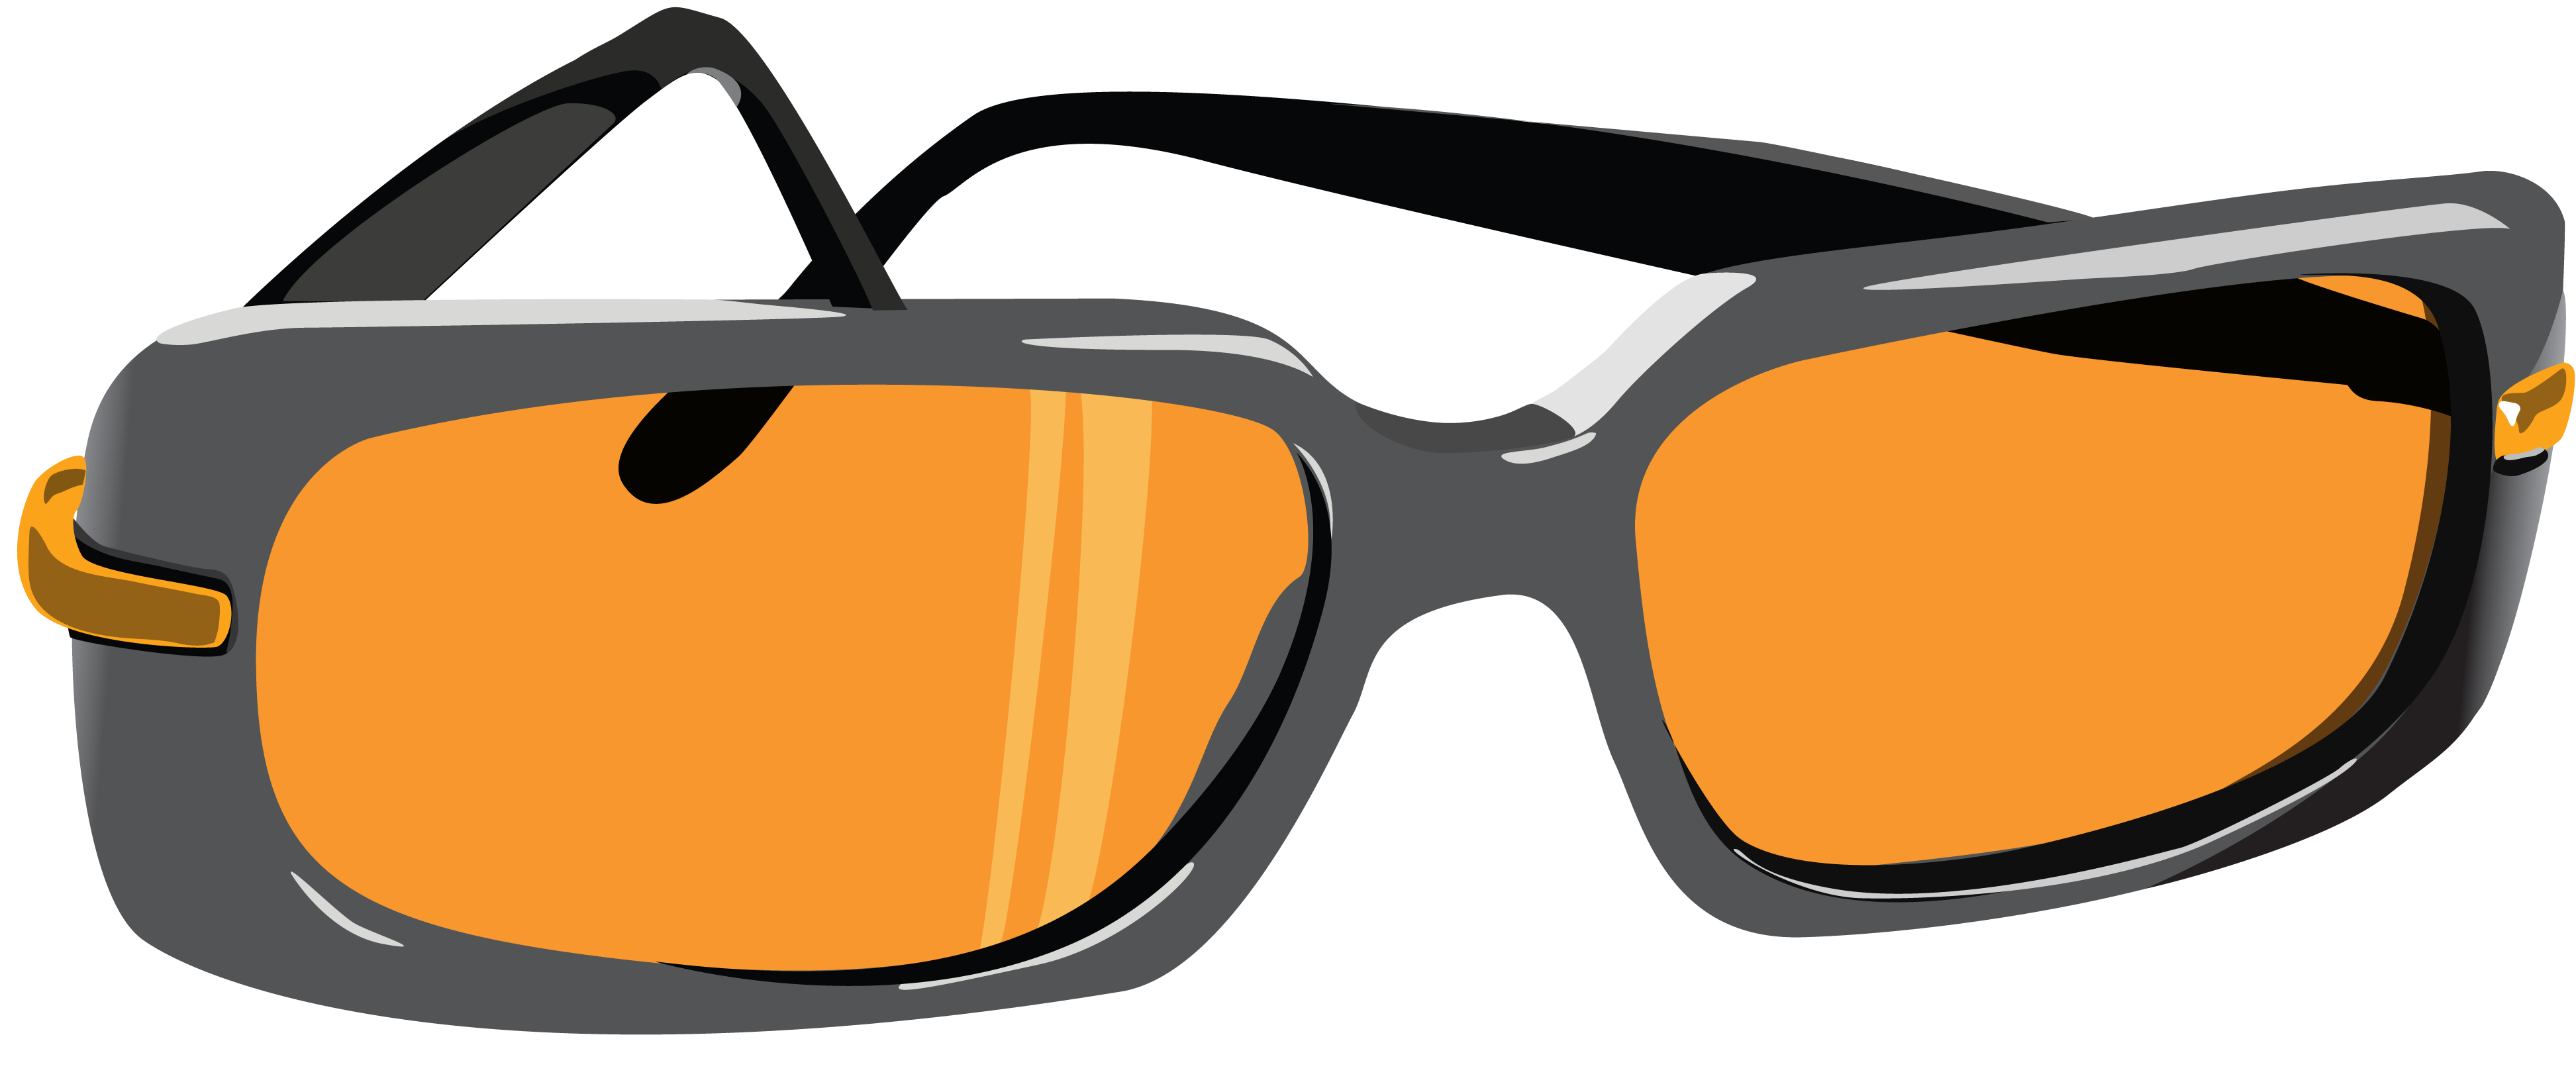 Money glasses clipart royalty free library Glasses PNG Image | Web Icons PNG royalty free library